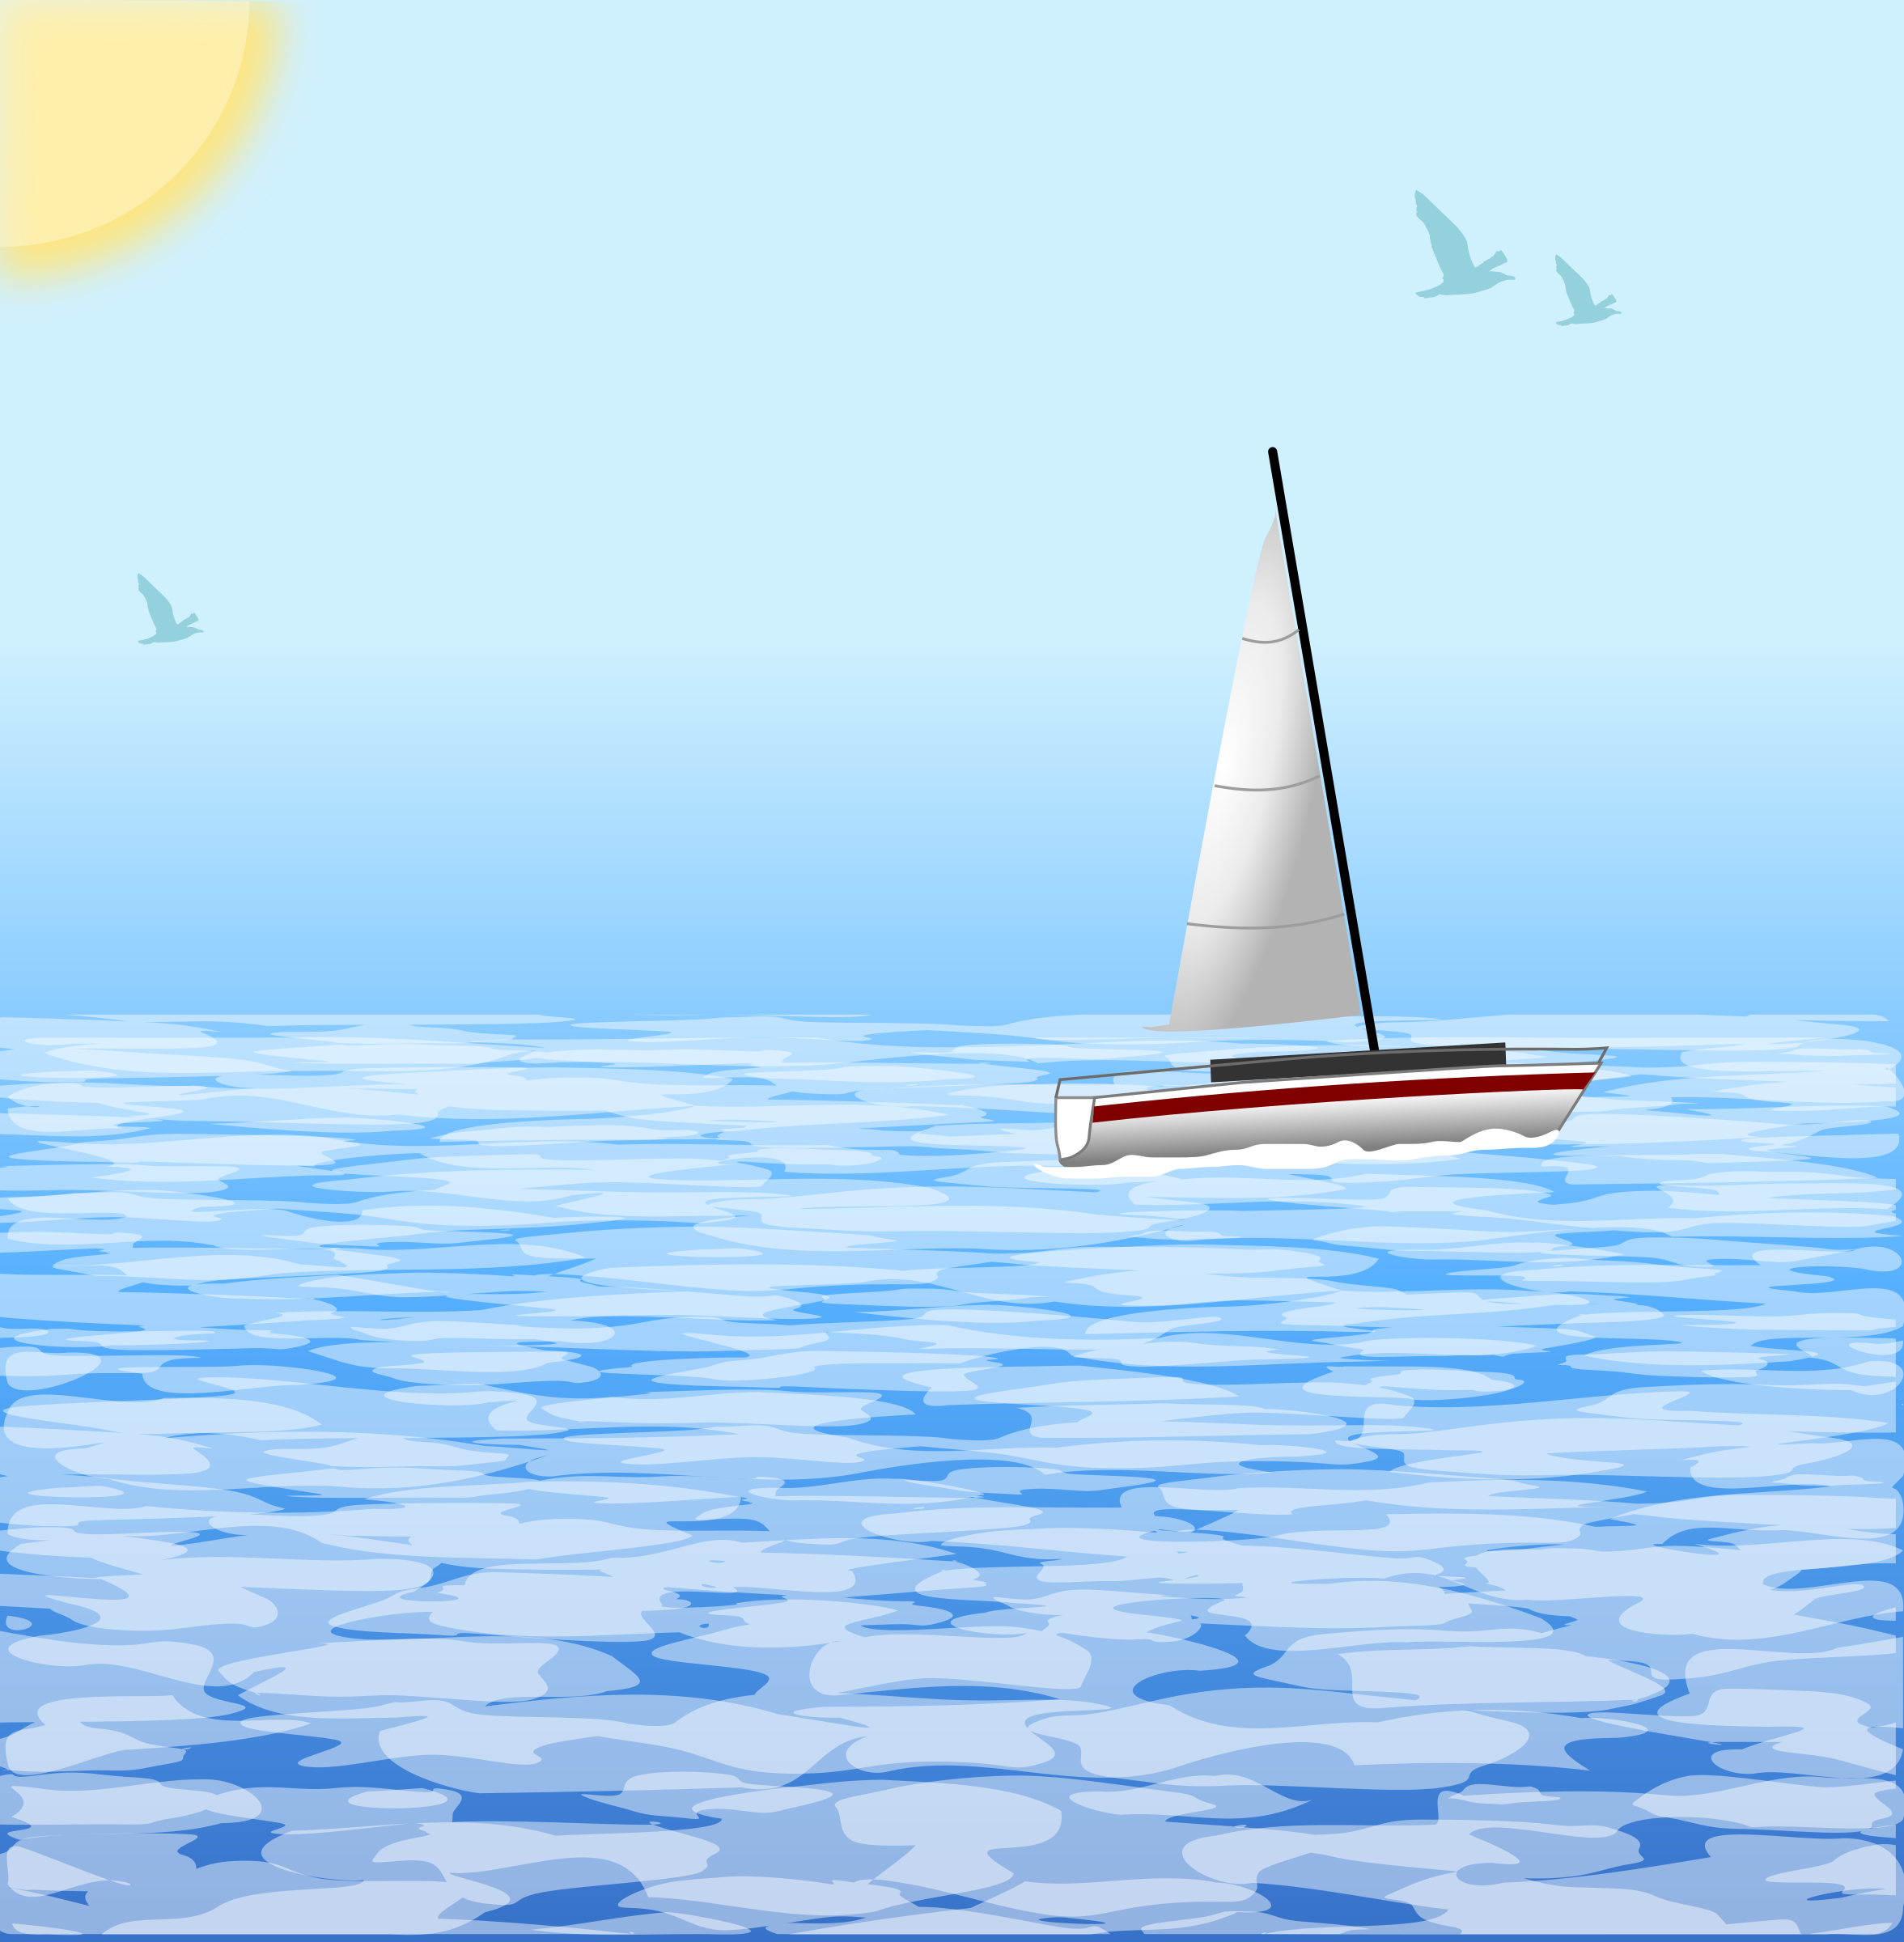 Sea scene with boat by Chrisdesign